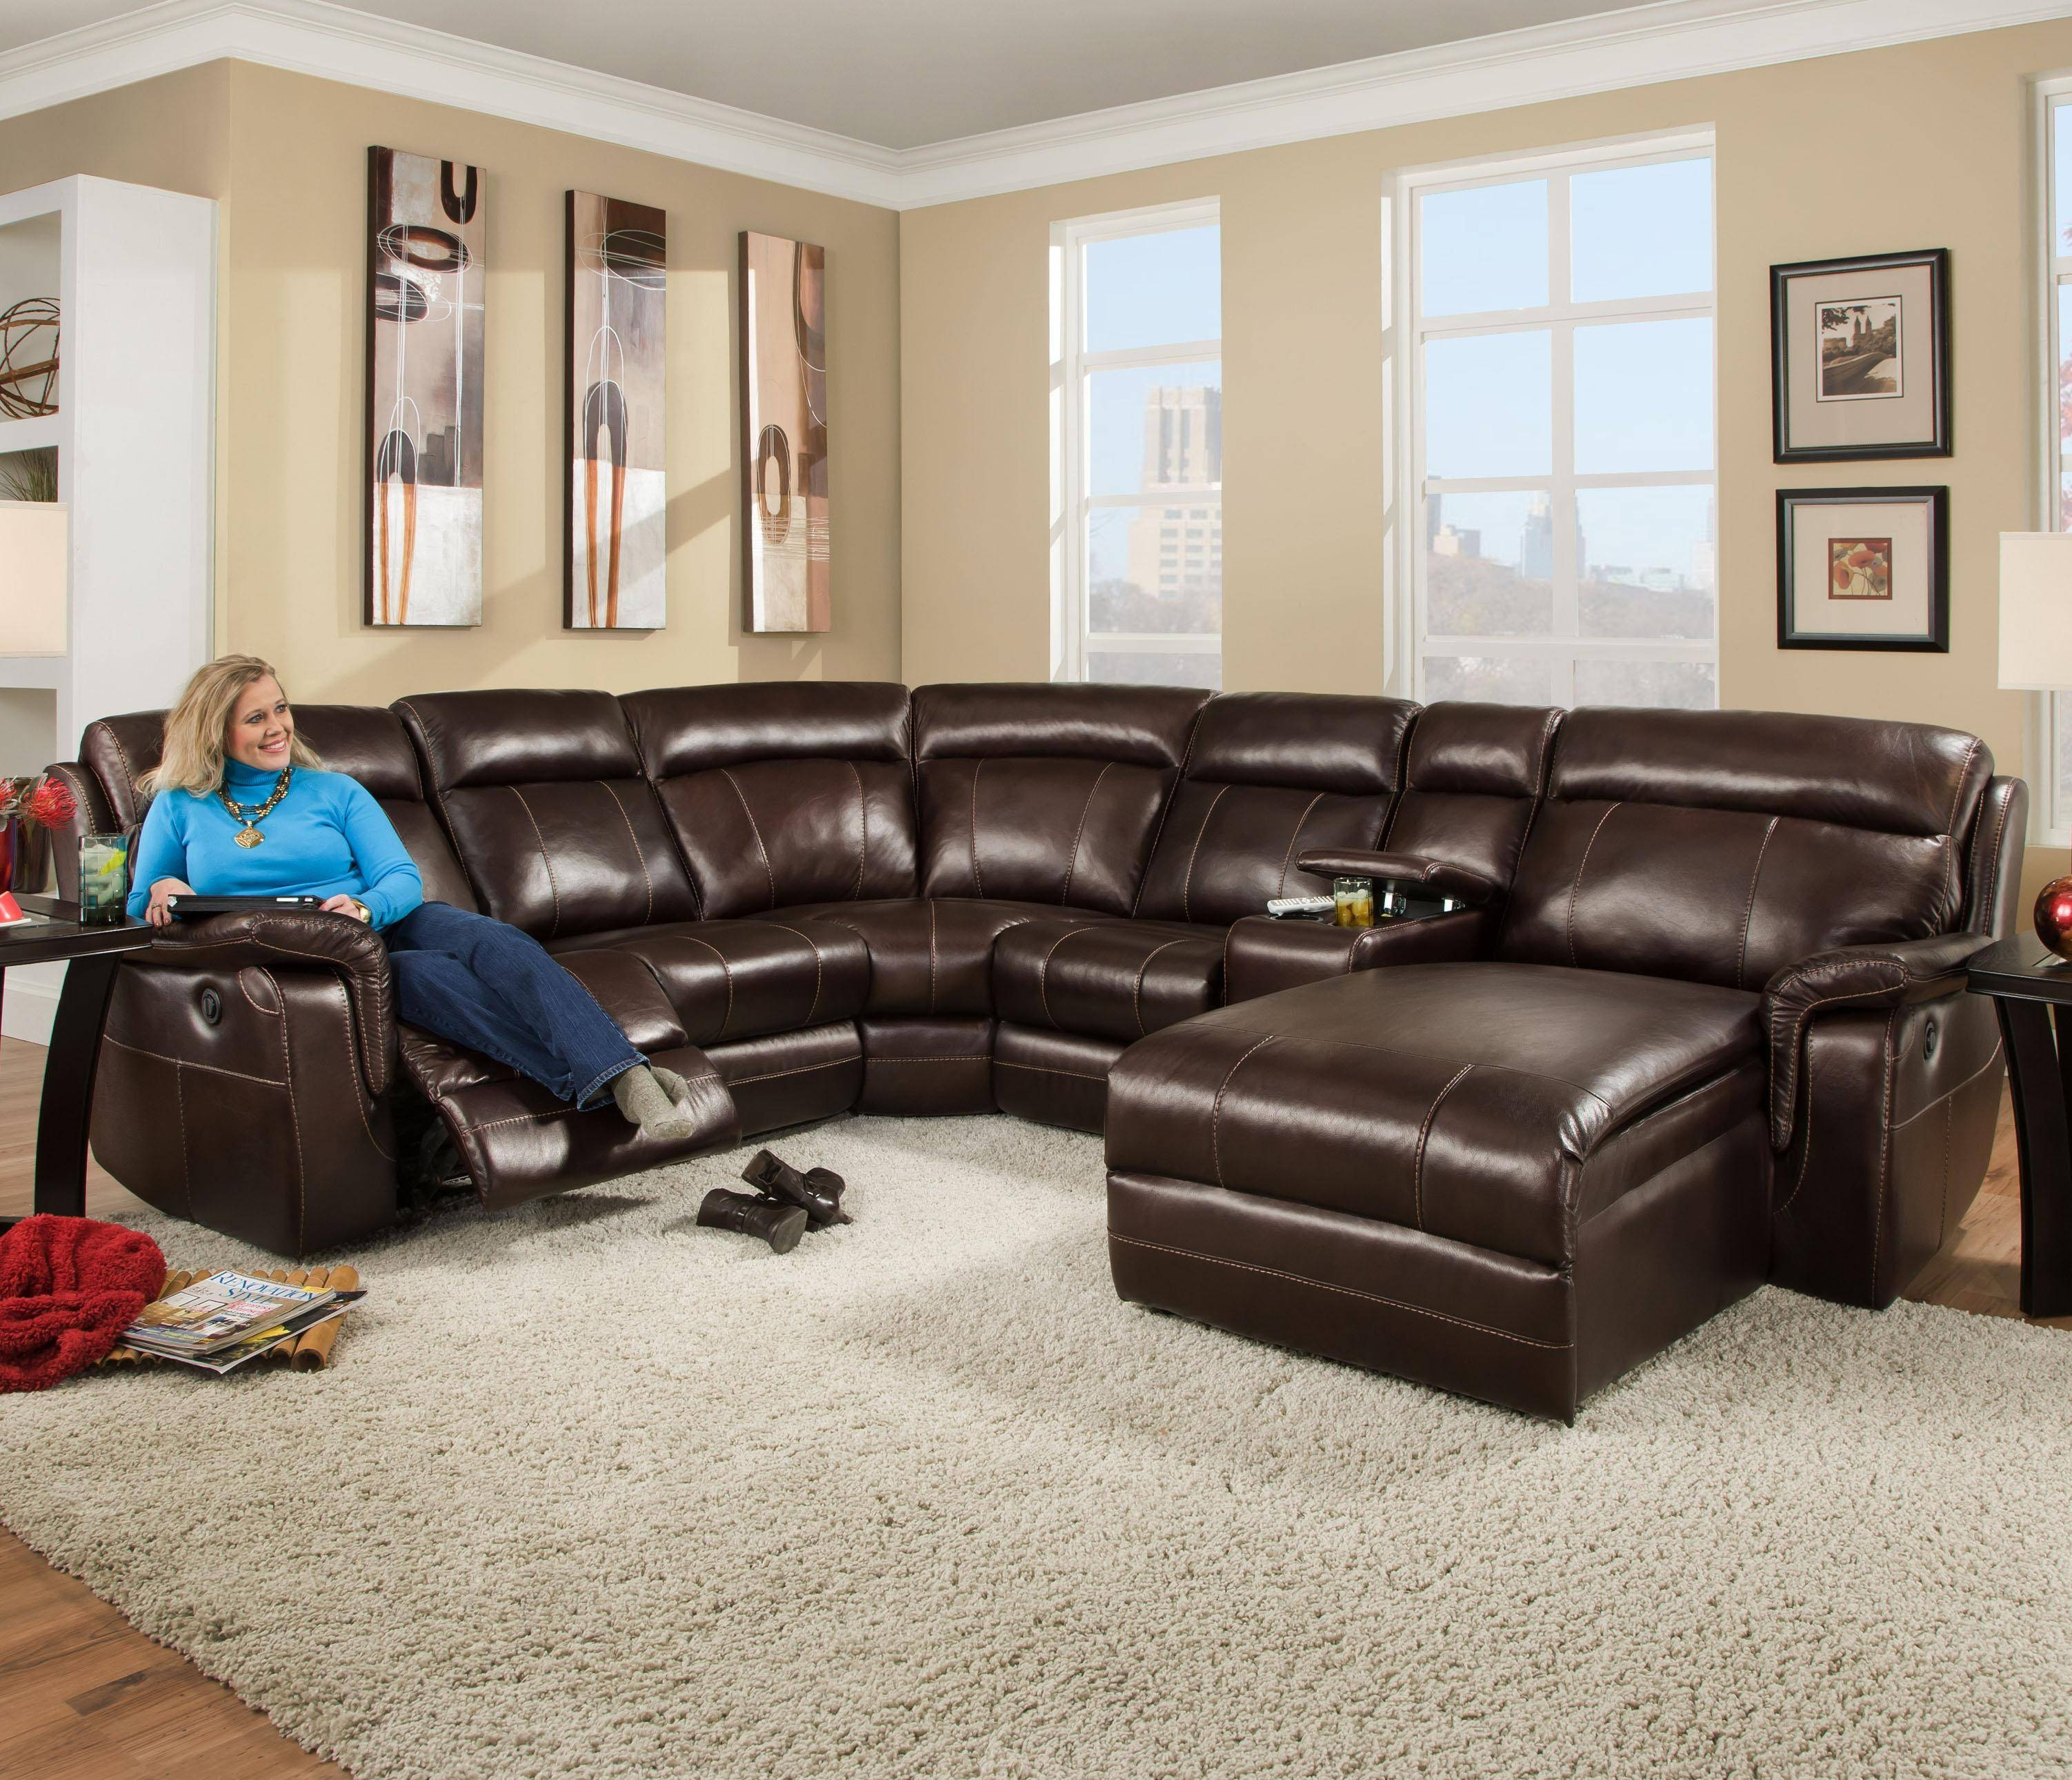 Corinthian 862 Sectional Sofa With 5 Seats (2 Are Wall Away pertaining to Corinthian Sectional Sofas (Image 8 of 30)